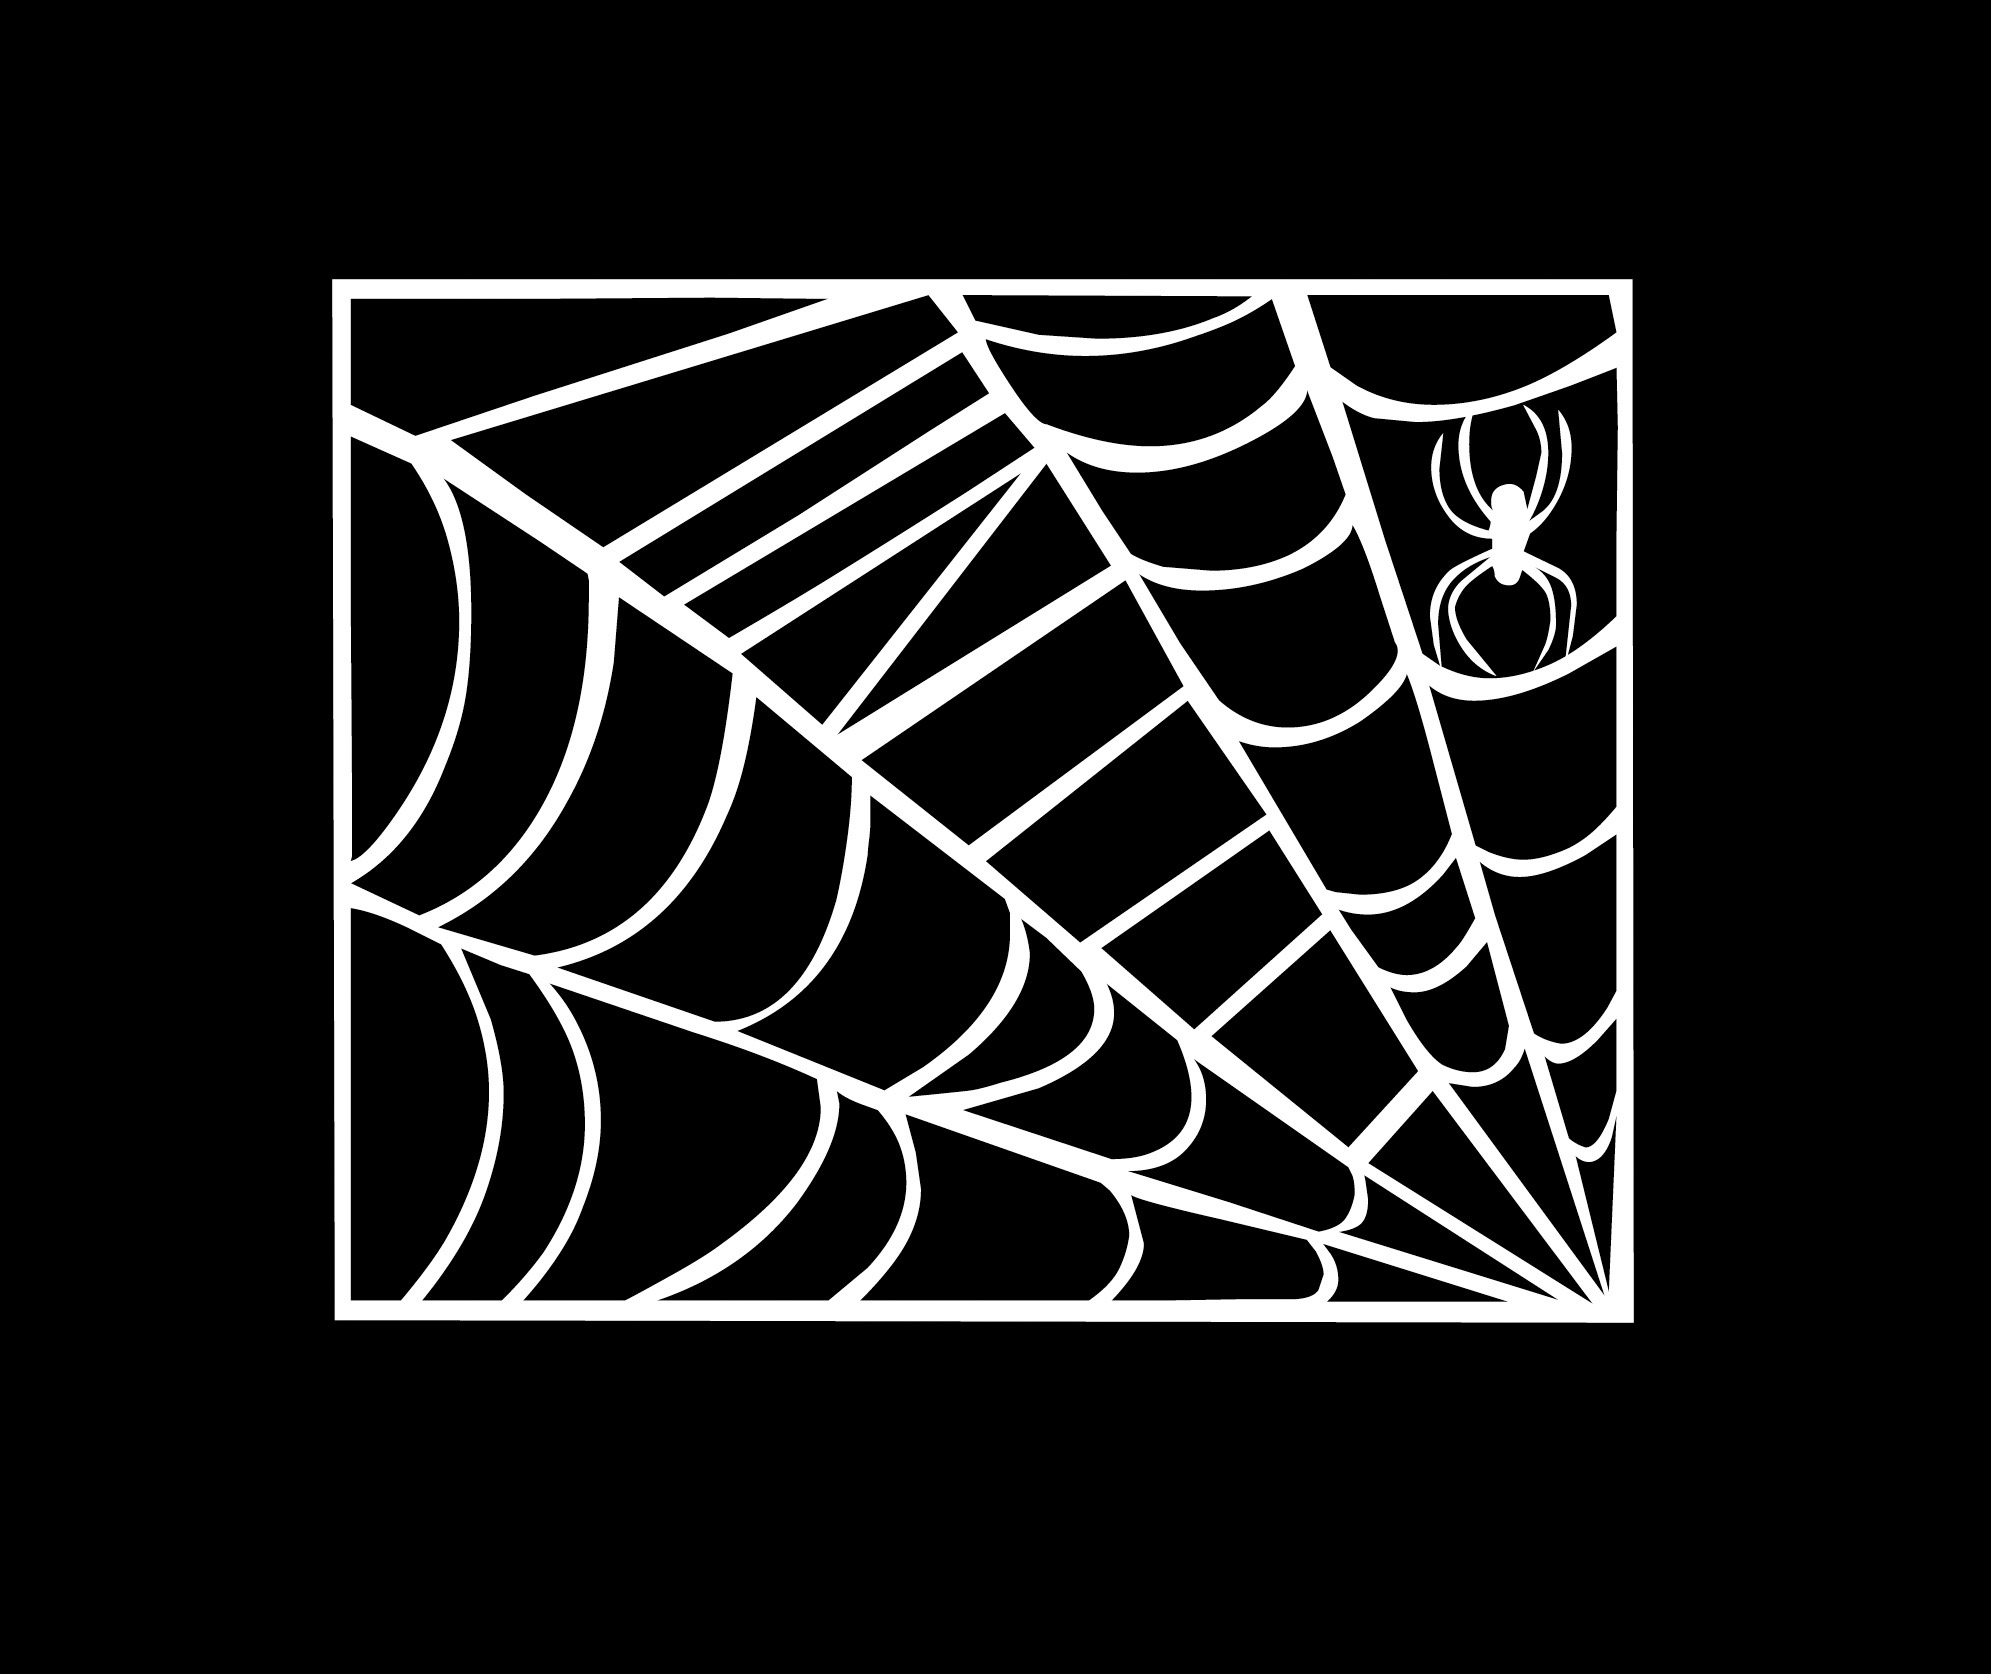 Image of clipart spider web.